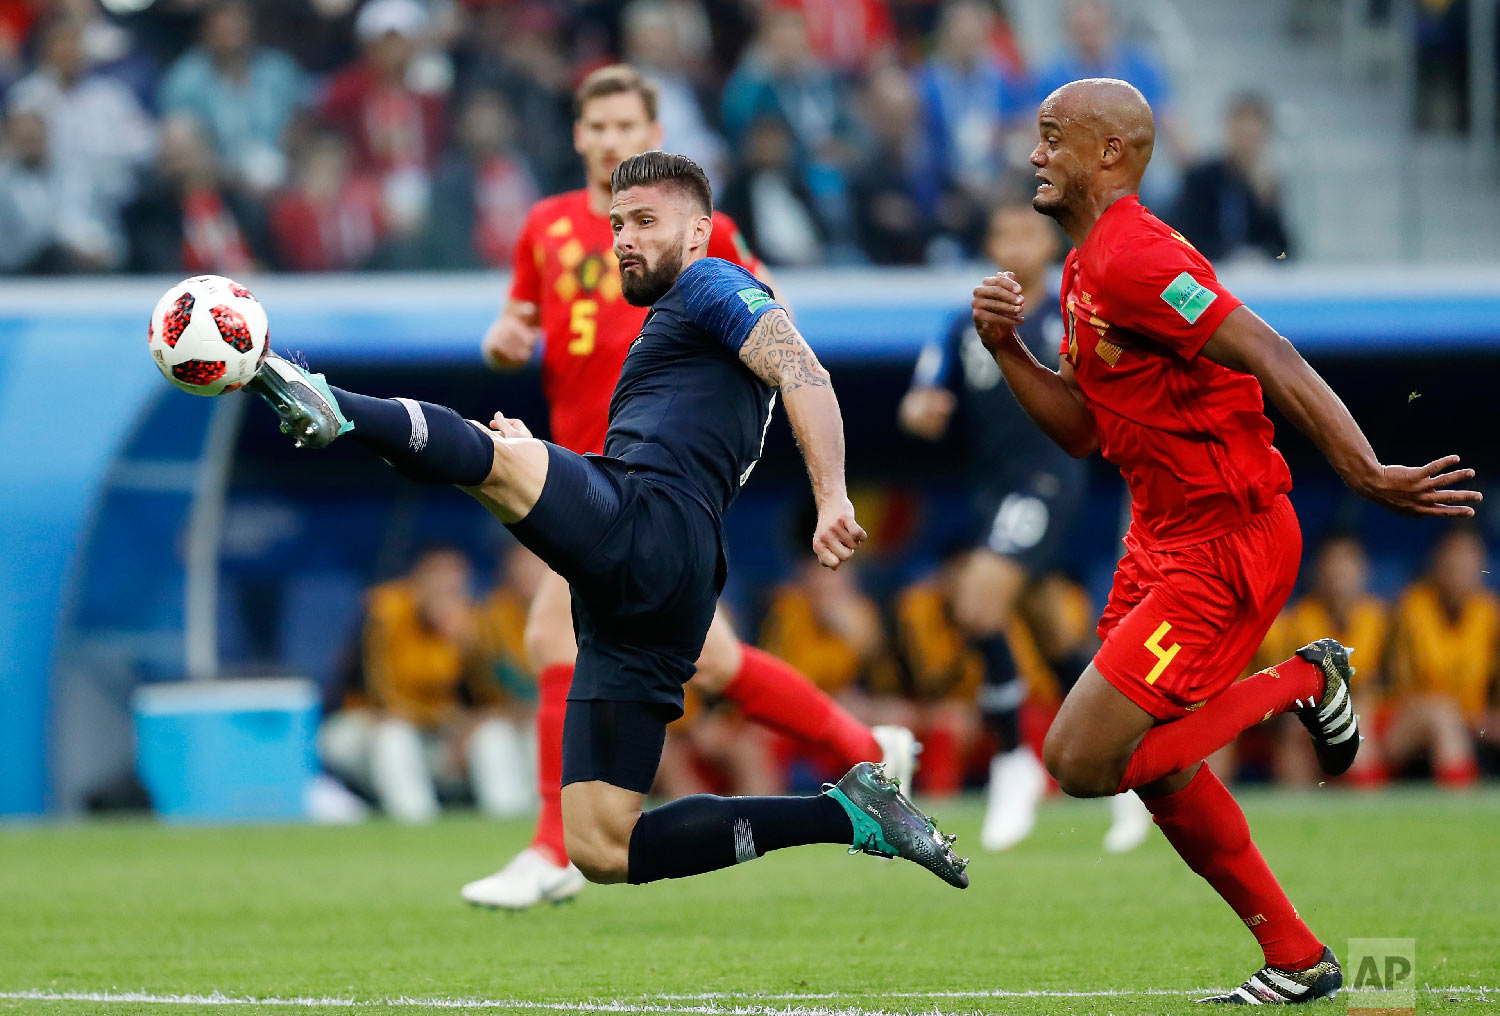 France's Olivier Giroud, left, tries to control the ball with Belgium's Vincent Kompany during the semifinal match between France and Belgium at the 2018 soccer World Cup in the St. Petersburg Stadium, in St. Petersburg, Russia, Tuesday, July 10, 2018. (AP Photo/David Vincent)